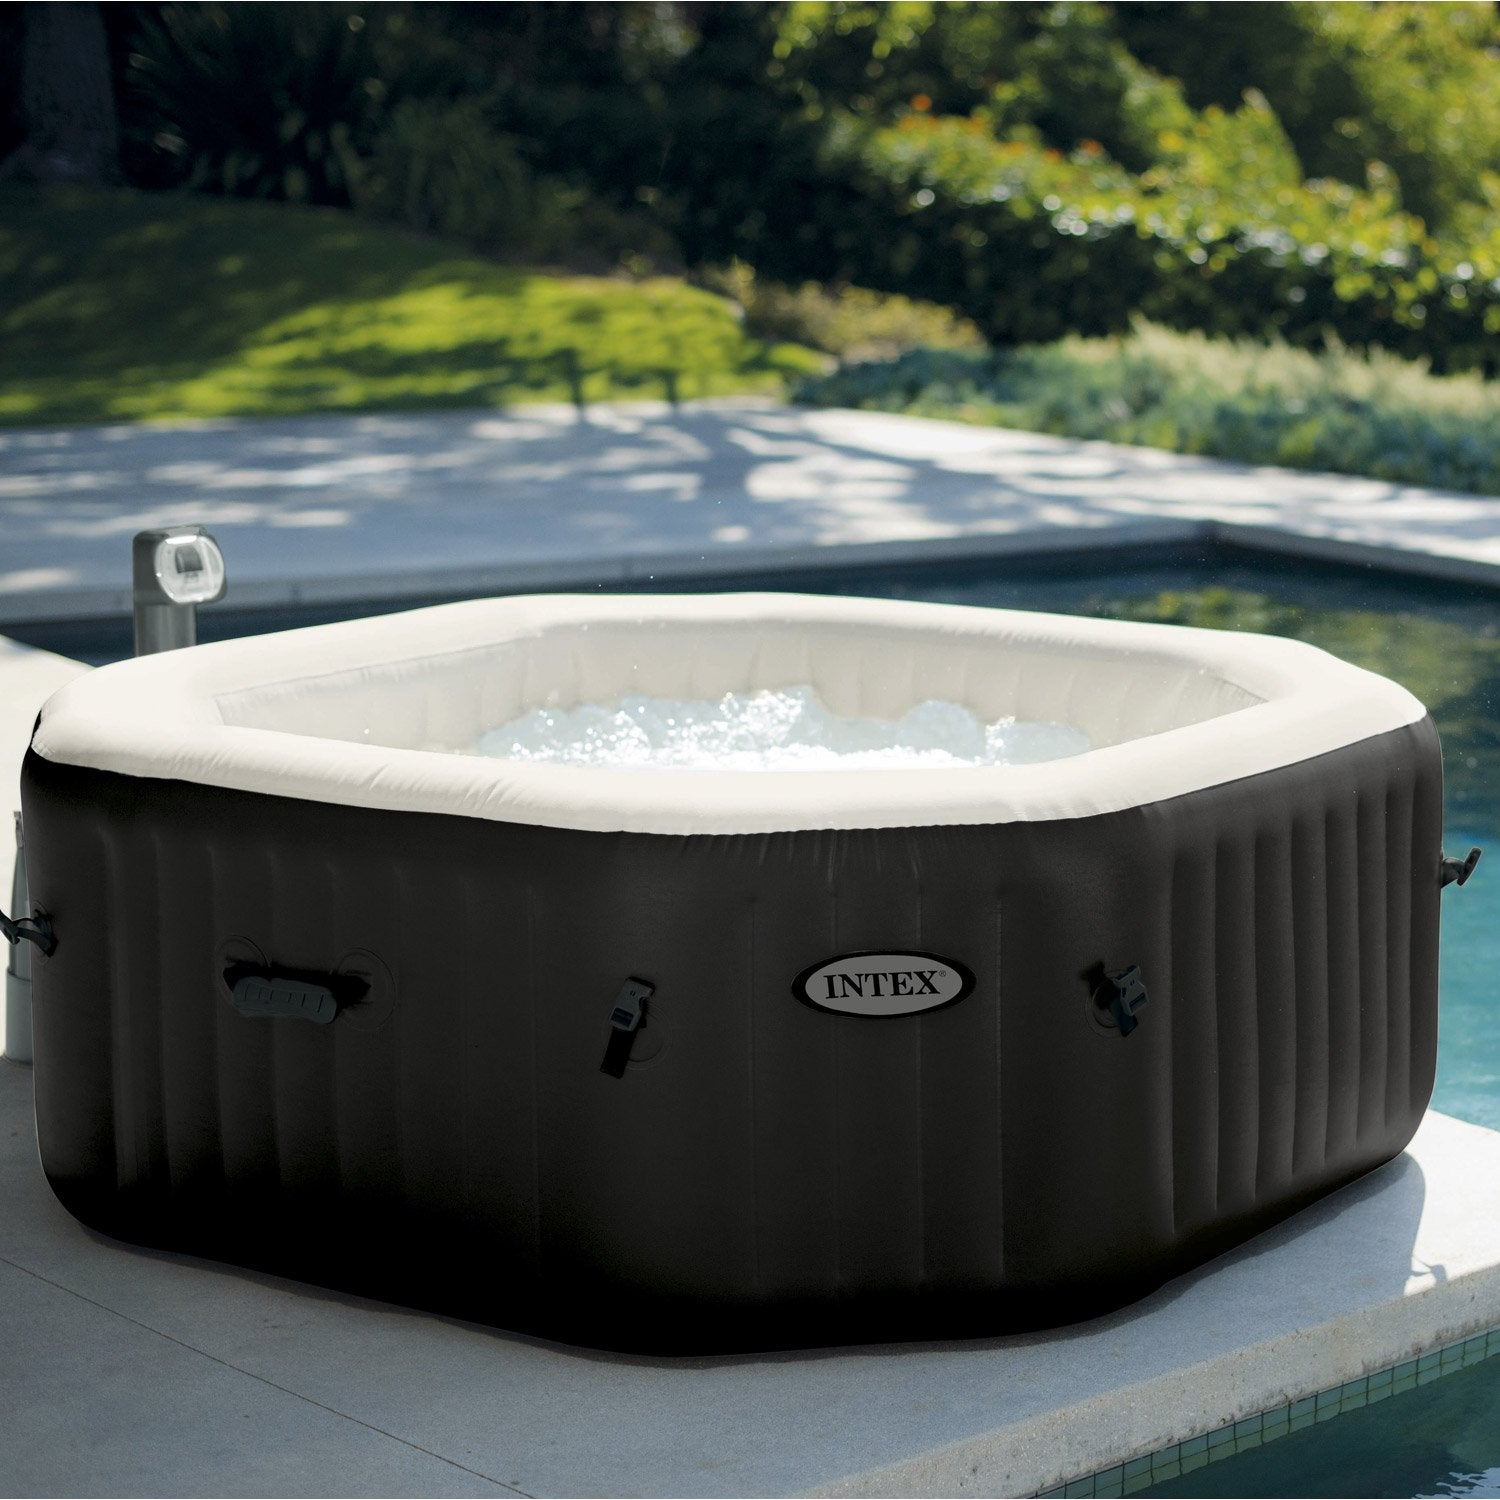 spa gonflable intex a jets bulles st rilisation sel 4 places octogonale leroy merlin. Black Bedroom Furniture Sets. Home Design Ideas